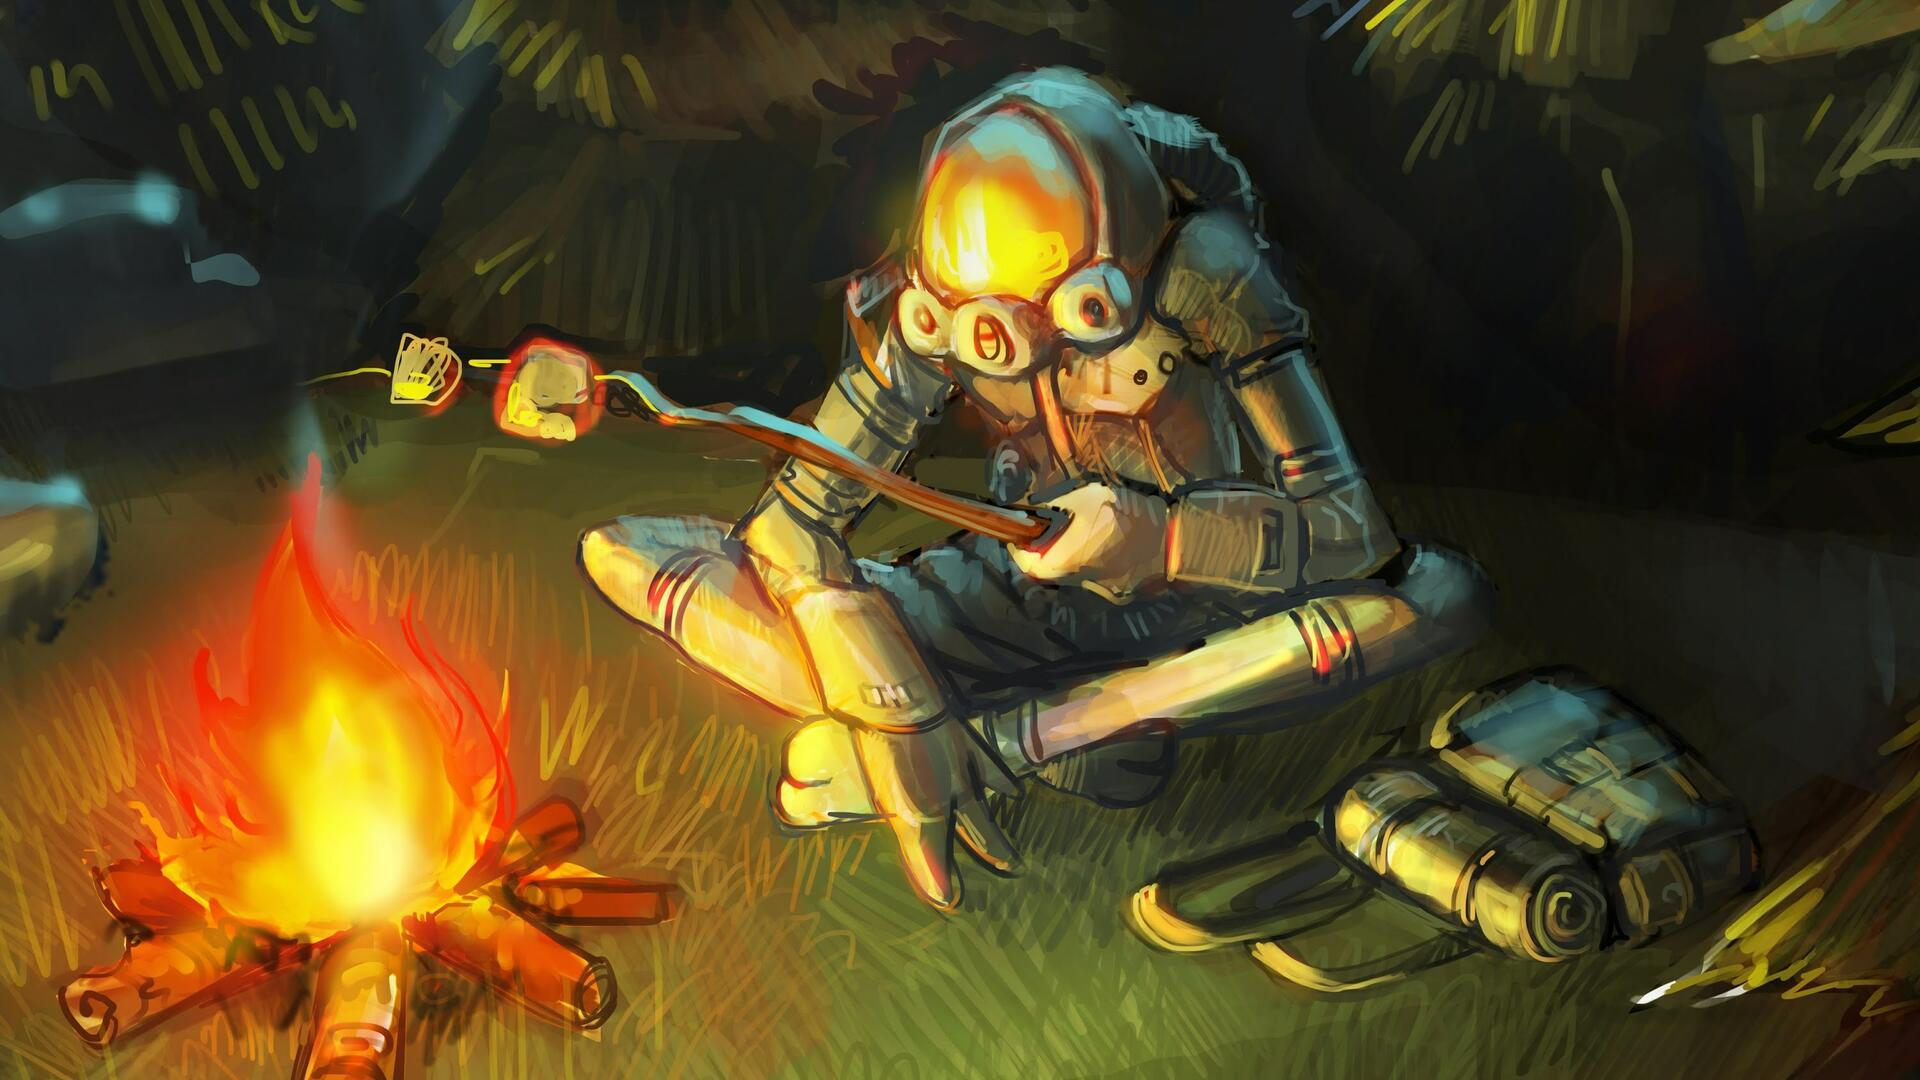 Outer Wilds Steam: Is Outer Wilds Releasing on Steam?